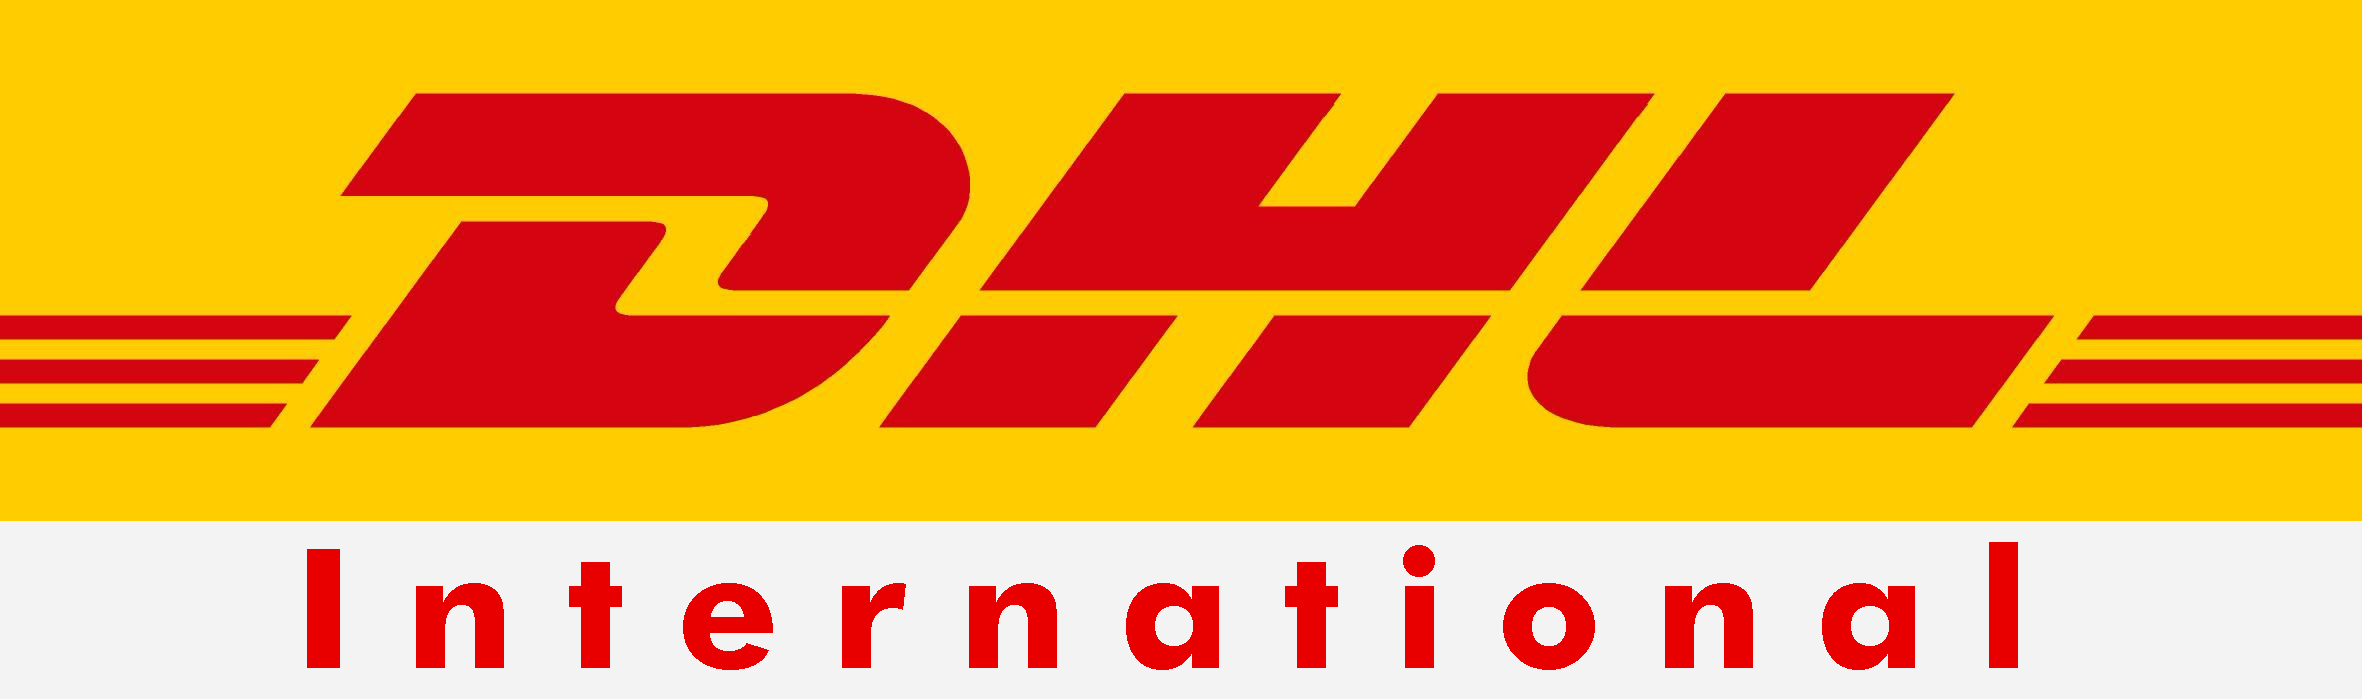 dhl express samstag tracking support. Black Bedroom Furniture Sets. Home Design Ideas